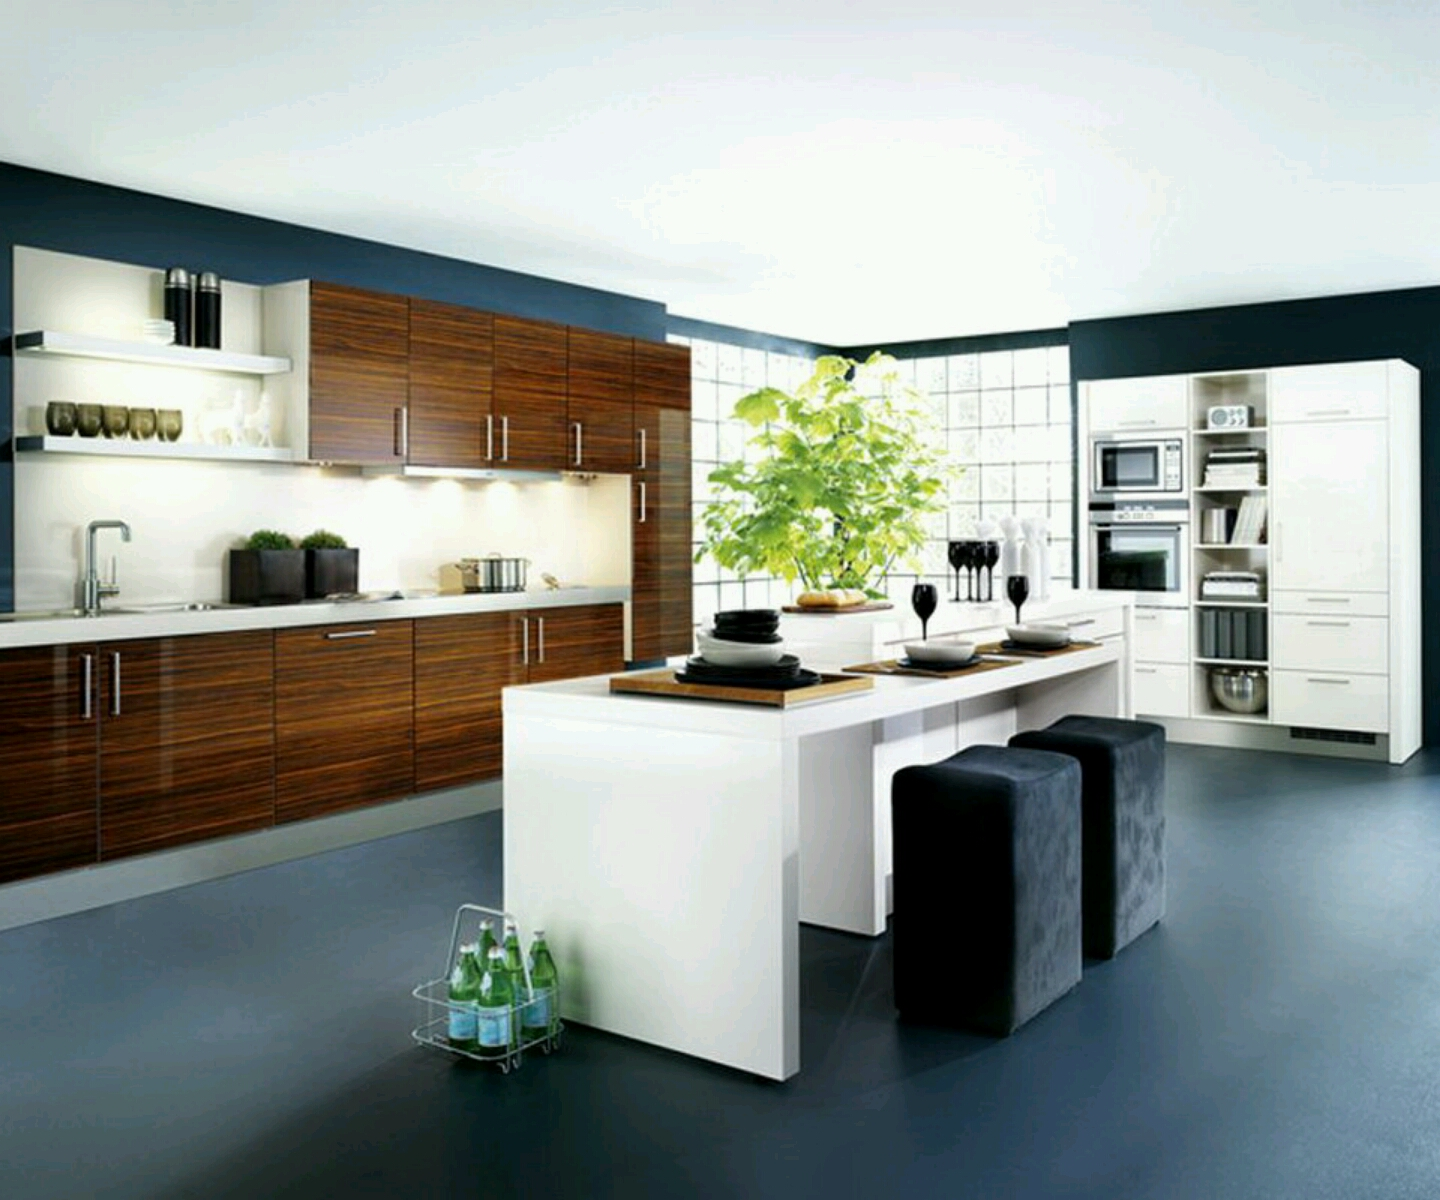 new home designs latest kitchen cabinets designs modern On contemporary kitchen design